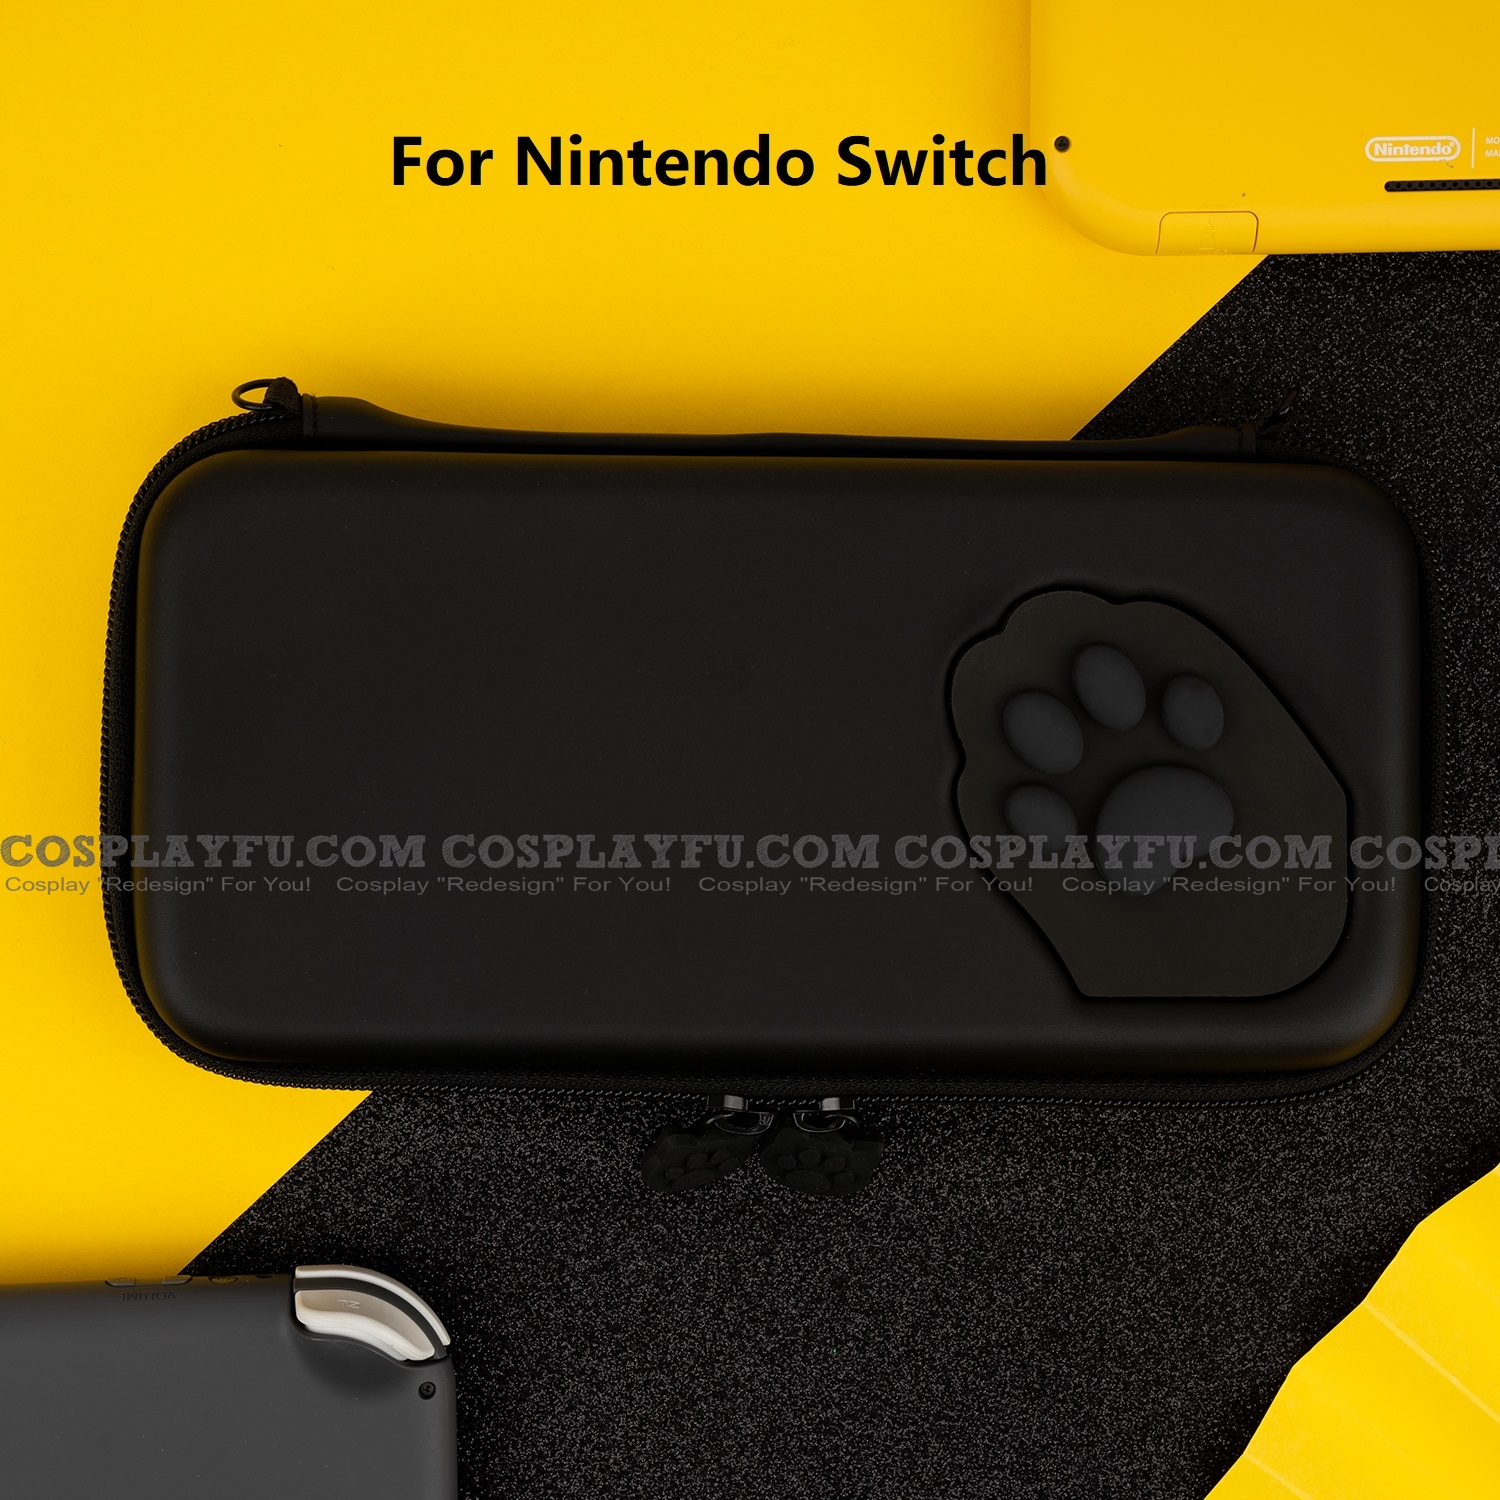 Black Cat paw Nintendo Switch Carrying Case - 10 Game Cards Holding